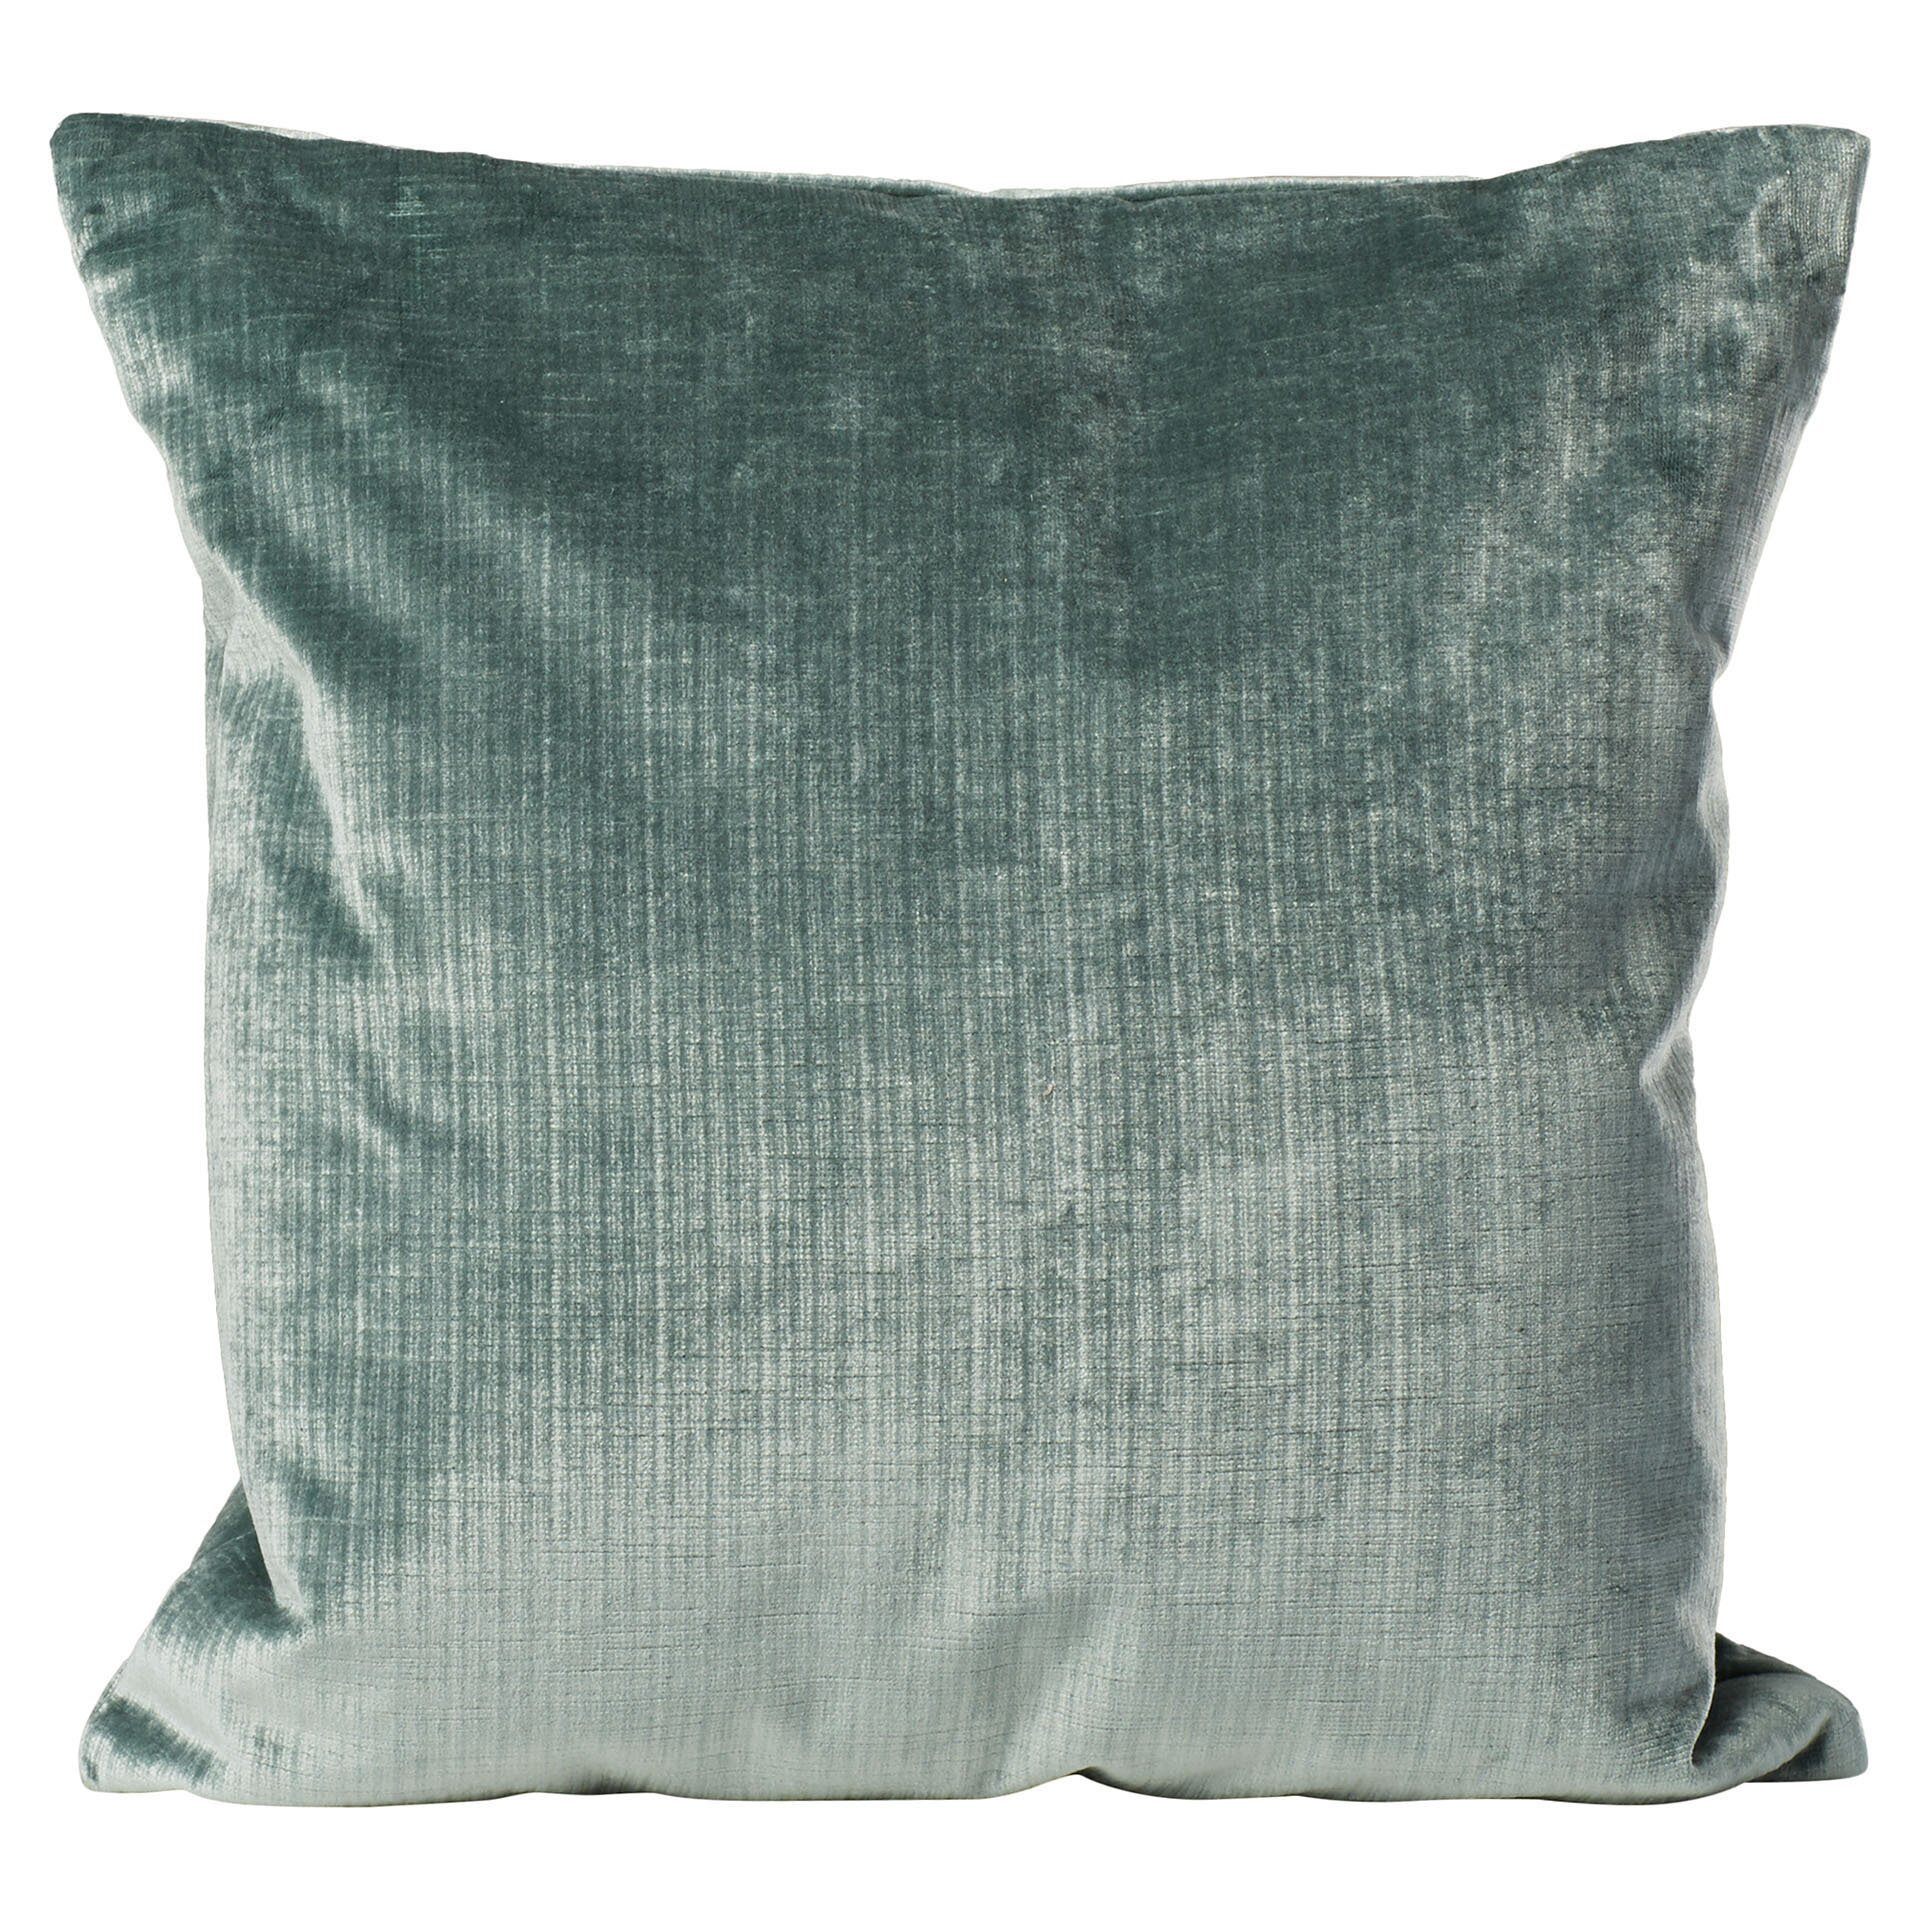 House of Hampton Ertvelde Plain Velvet Throw Pillow & Reviews Wayfair